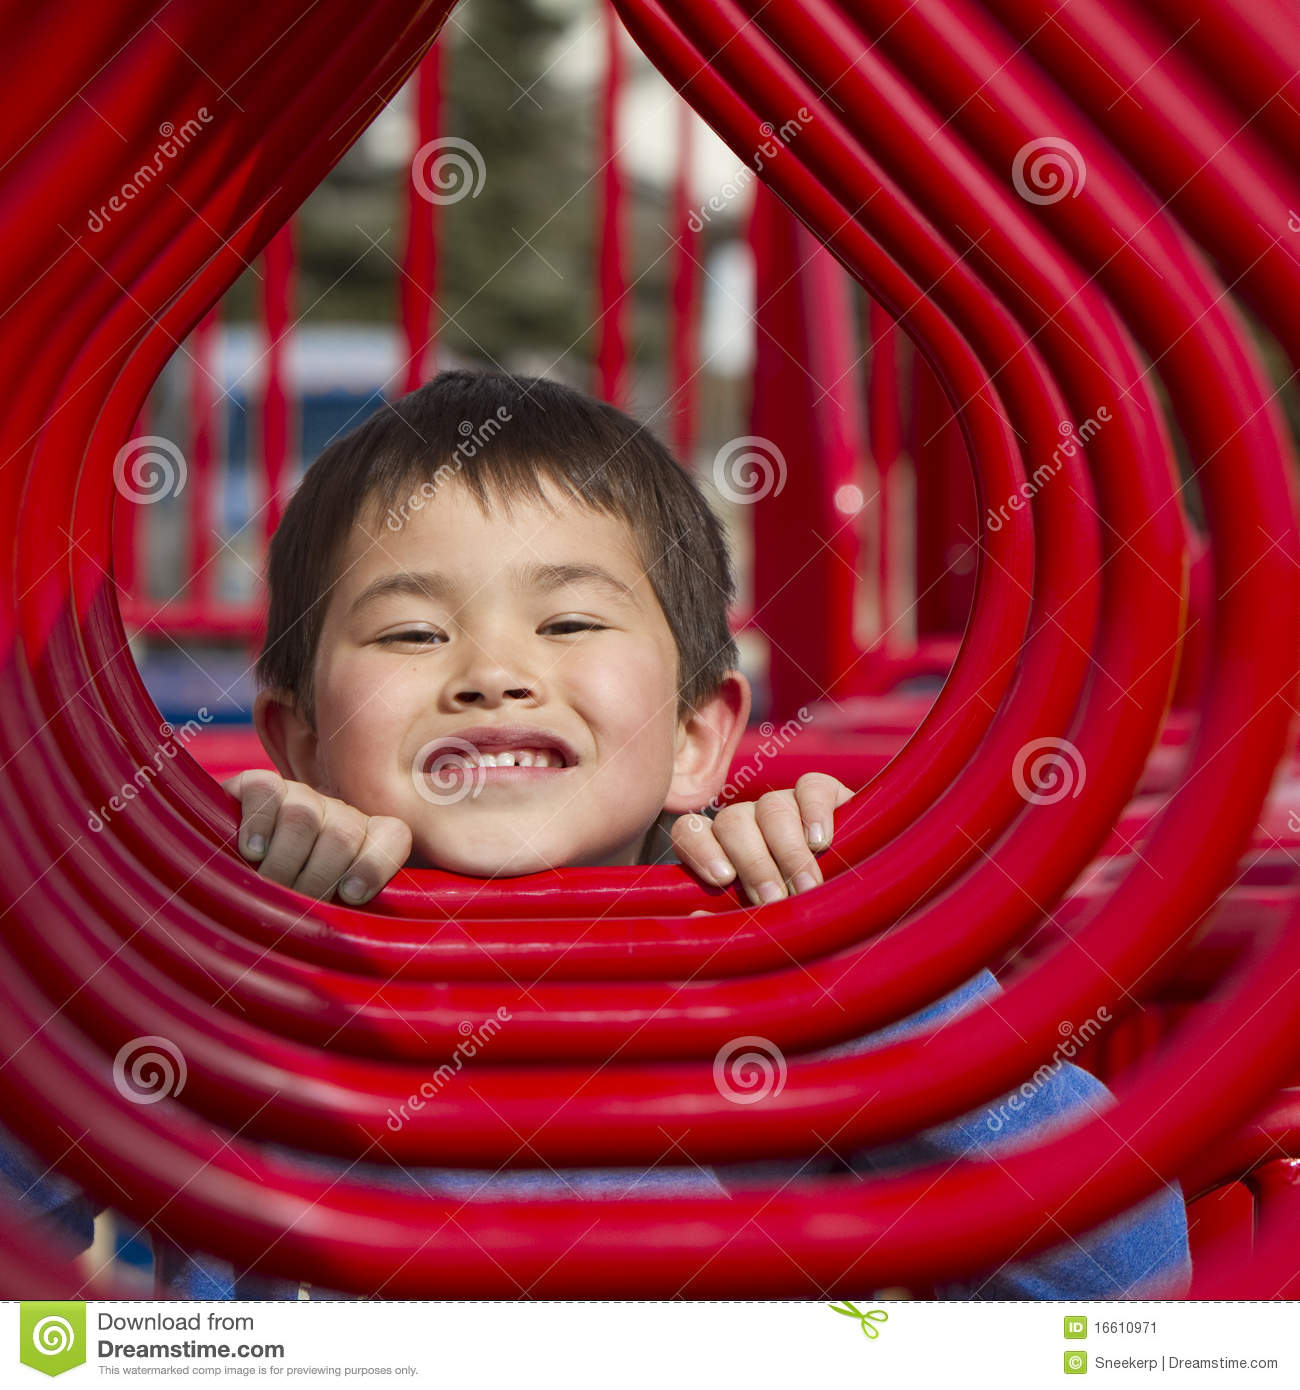 Young boy looking in the hoops of a playground